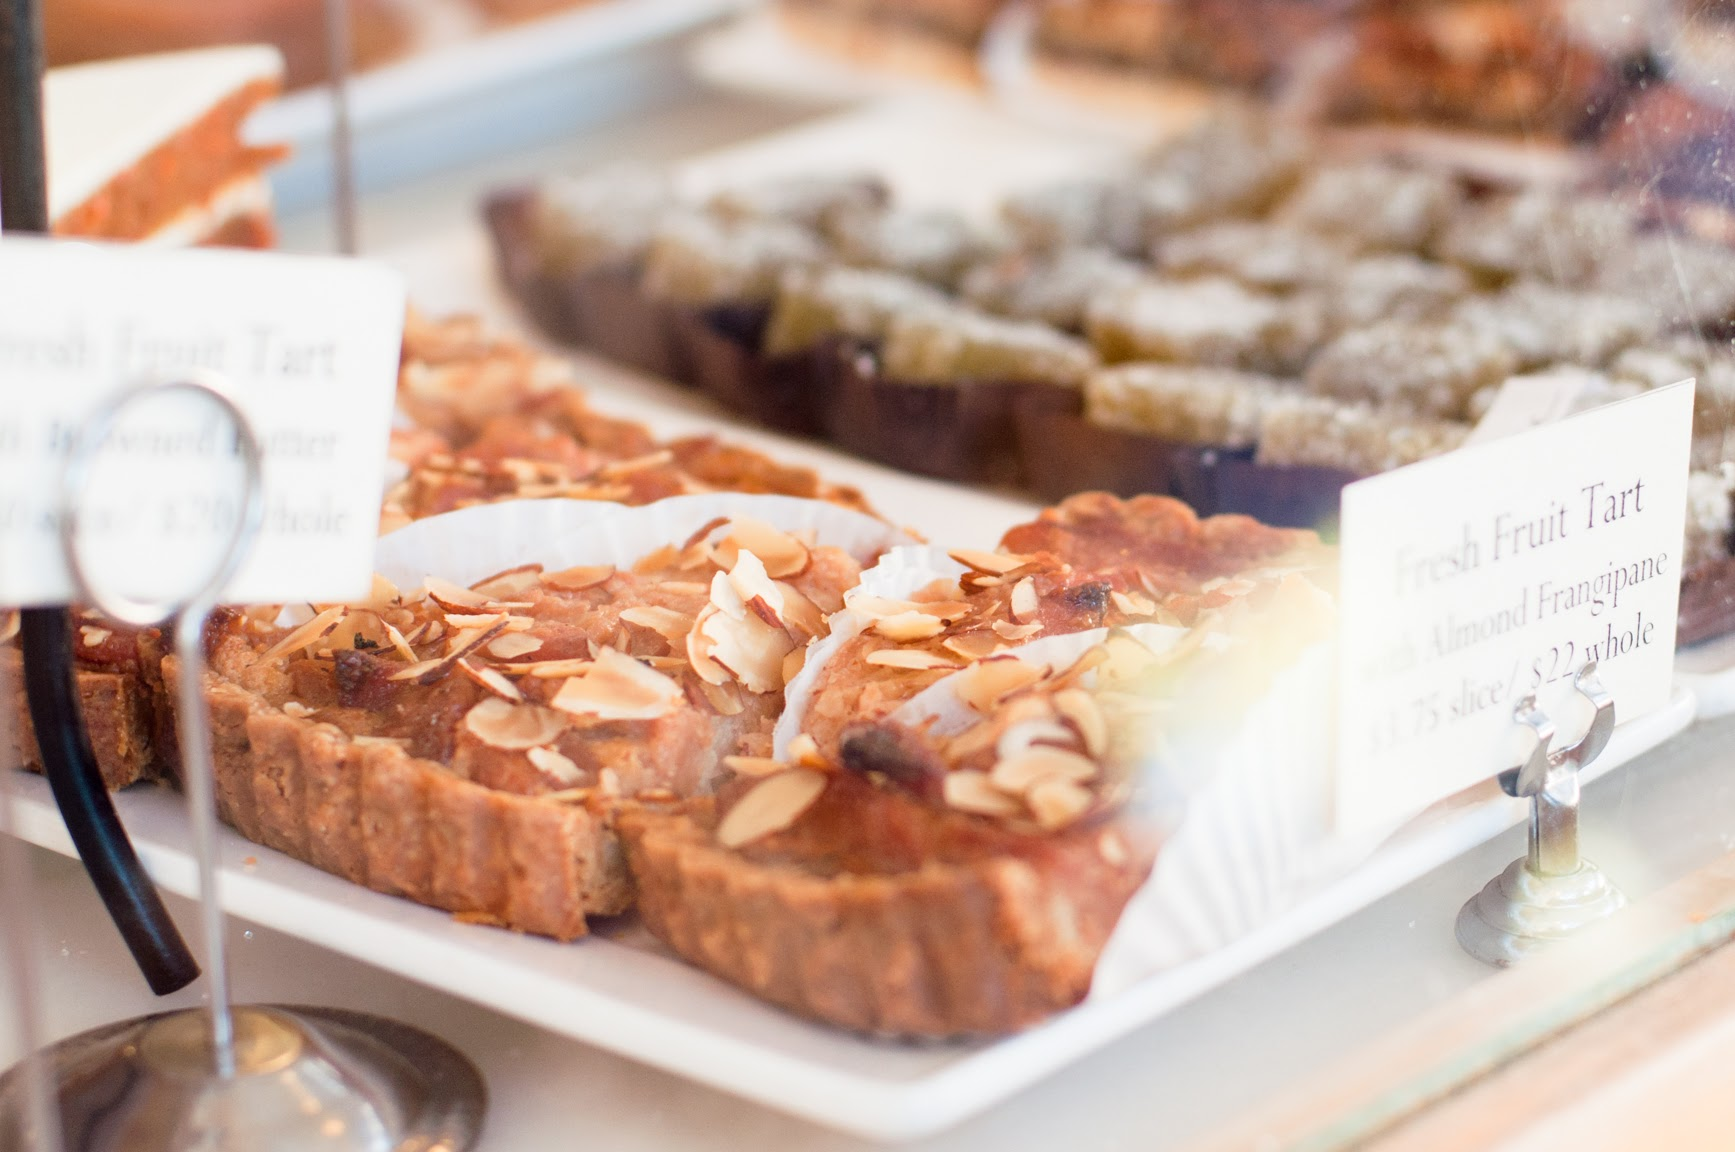 pastries in a store window creative perks for employees